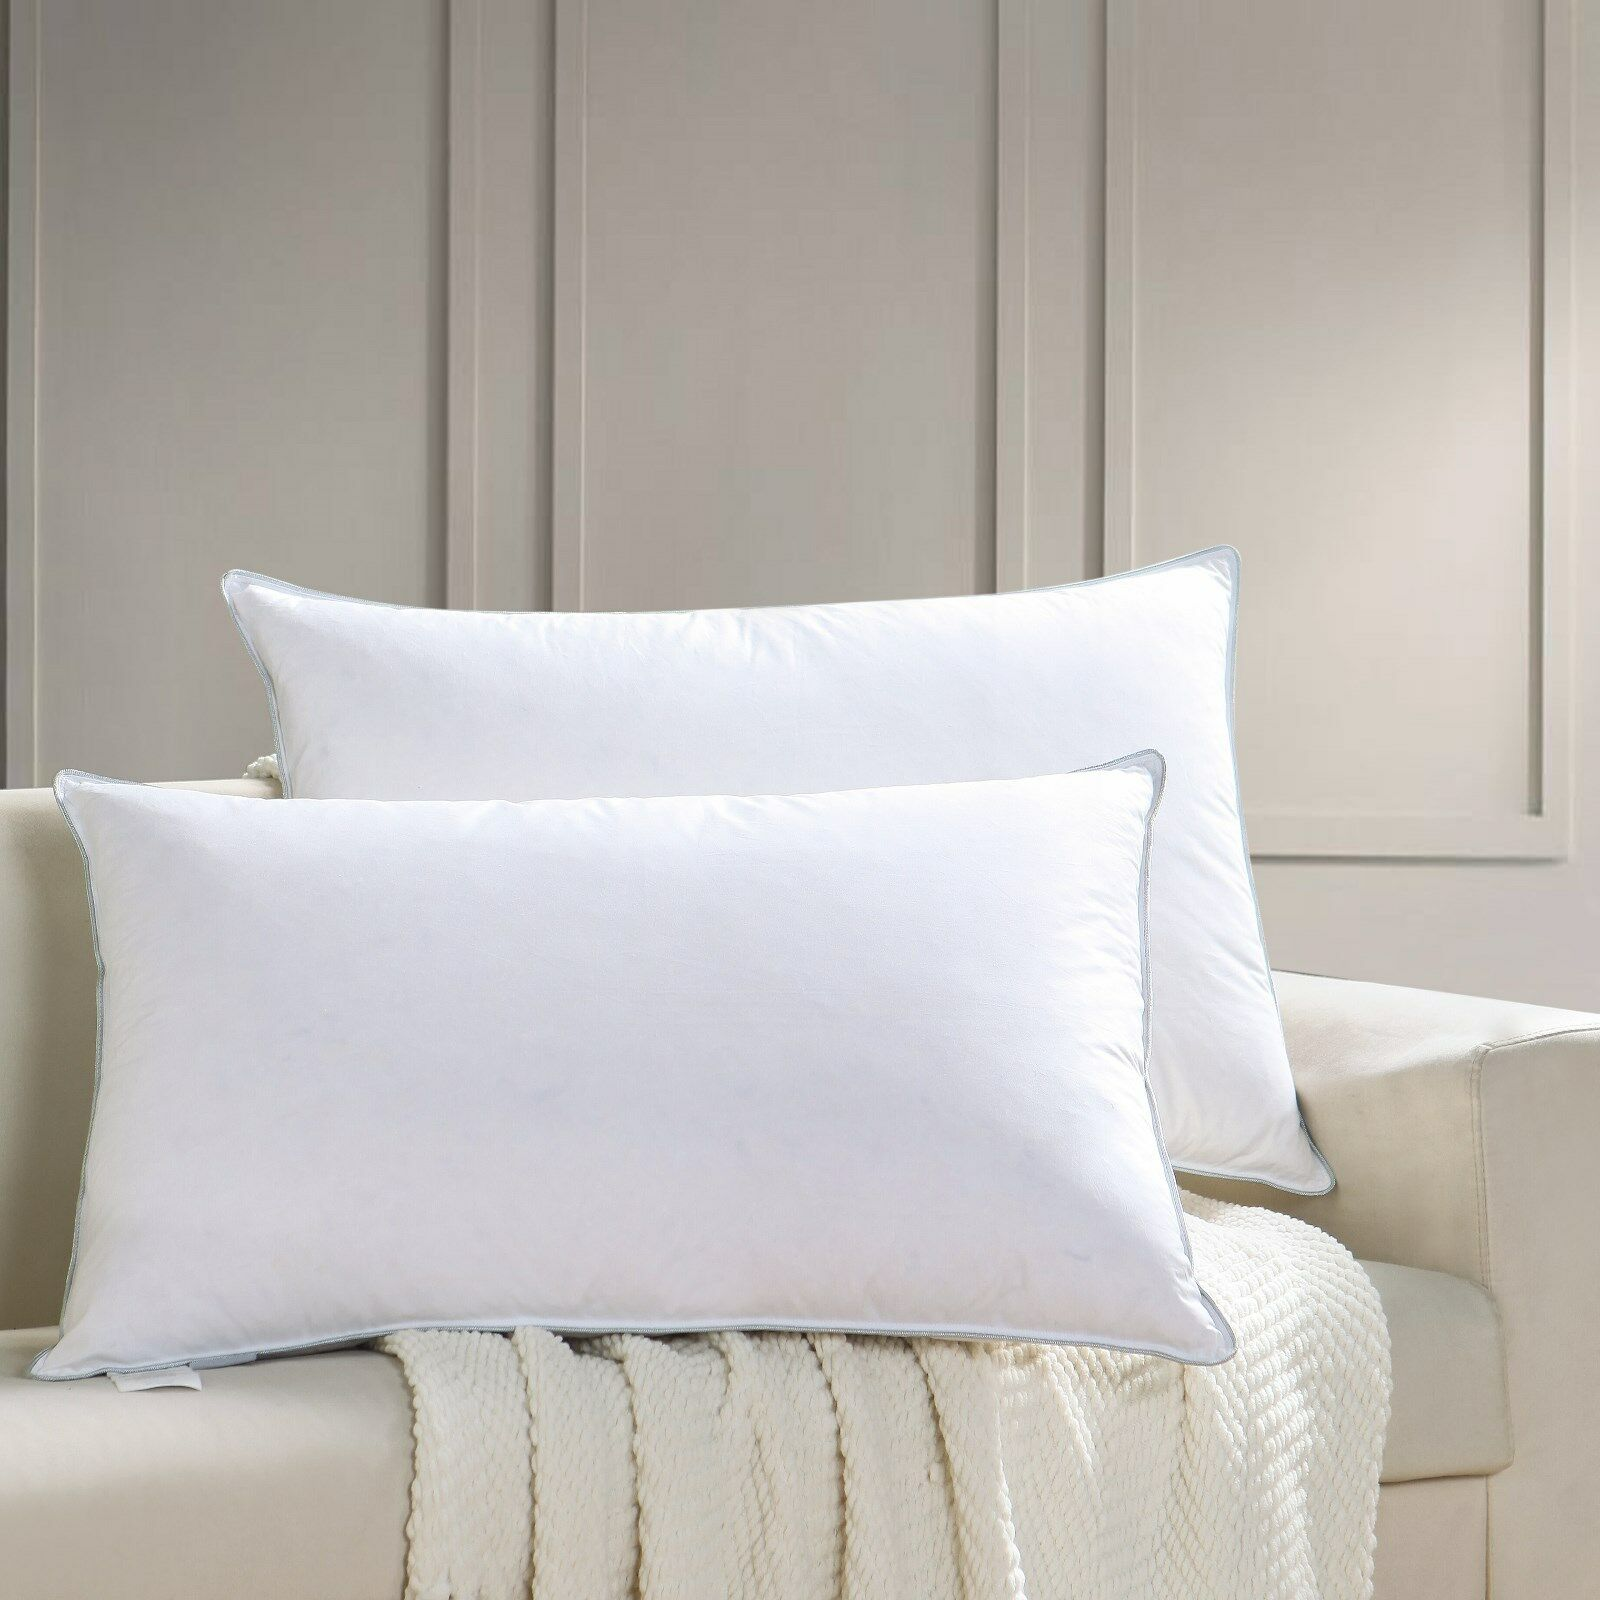 Goose Down Feather Pillow for Sleeping ,100% Cotton Shell